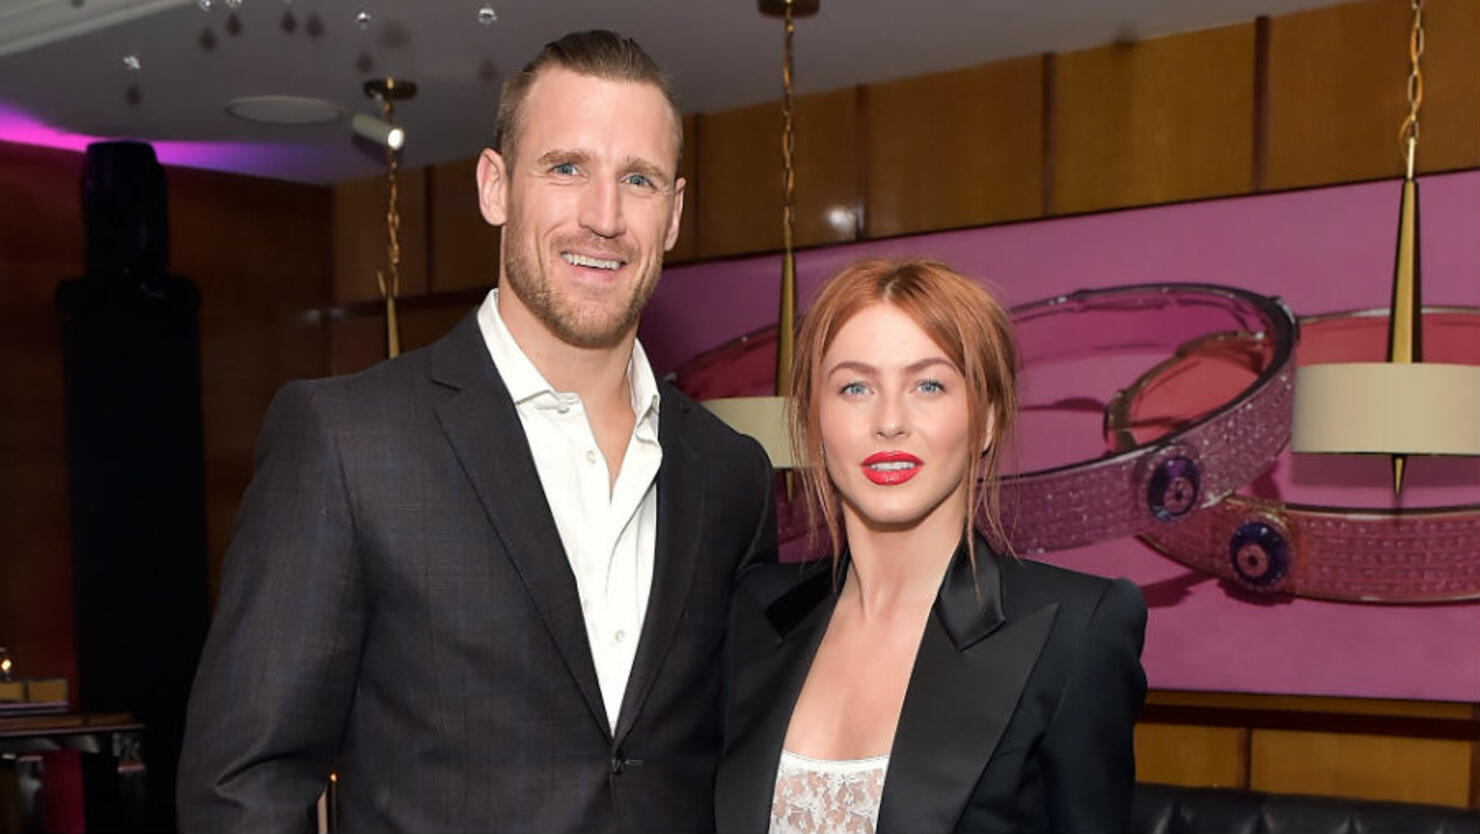 Julianne Hough & Brooks Laich Attempted To Reconcile